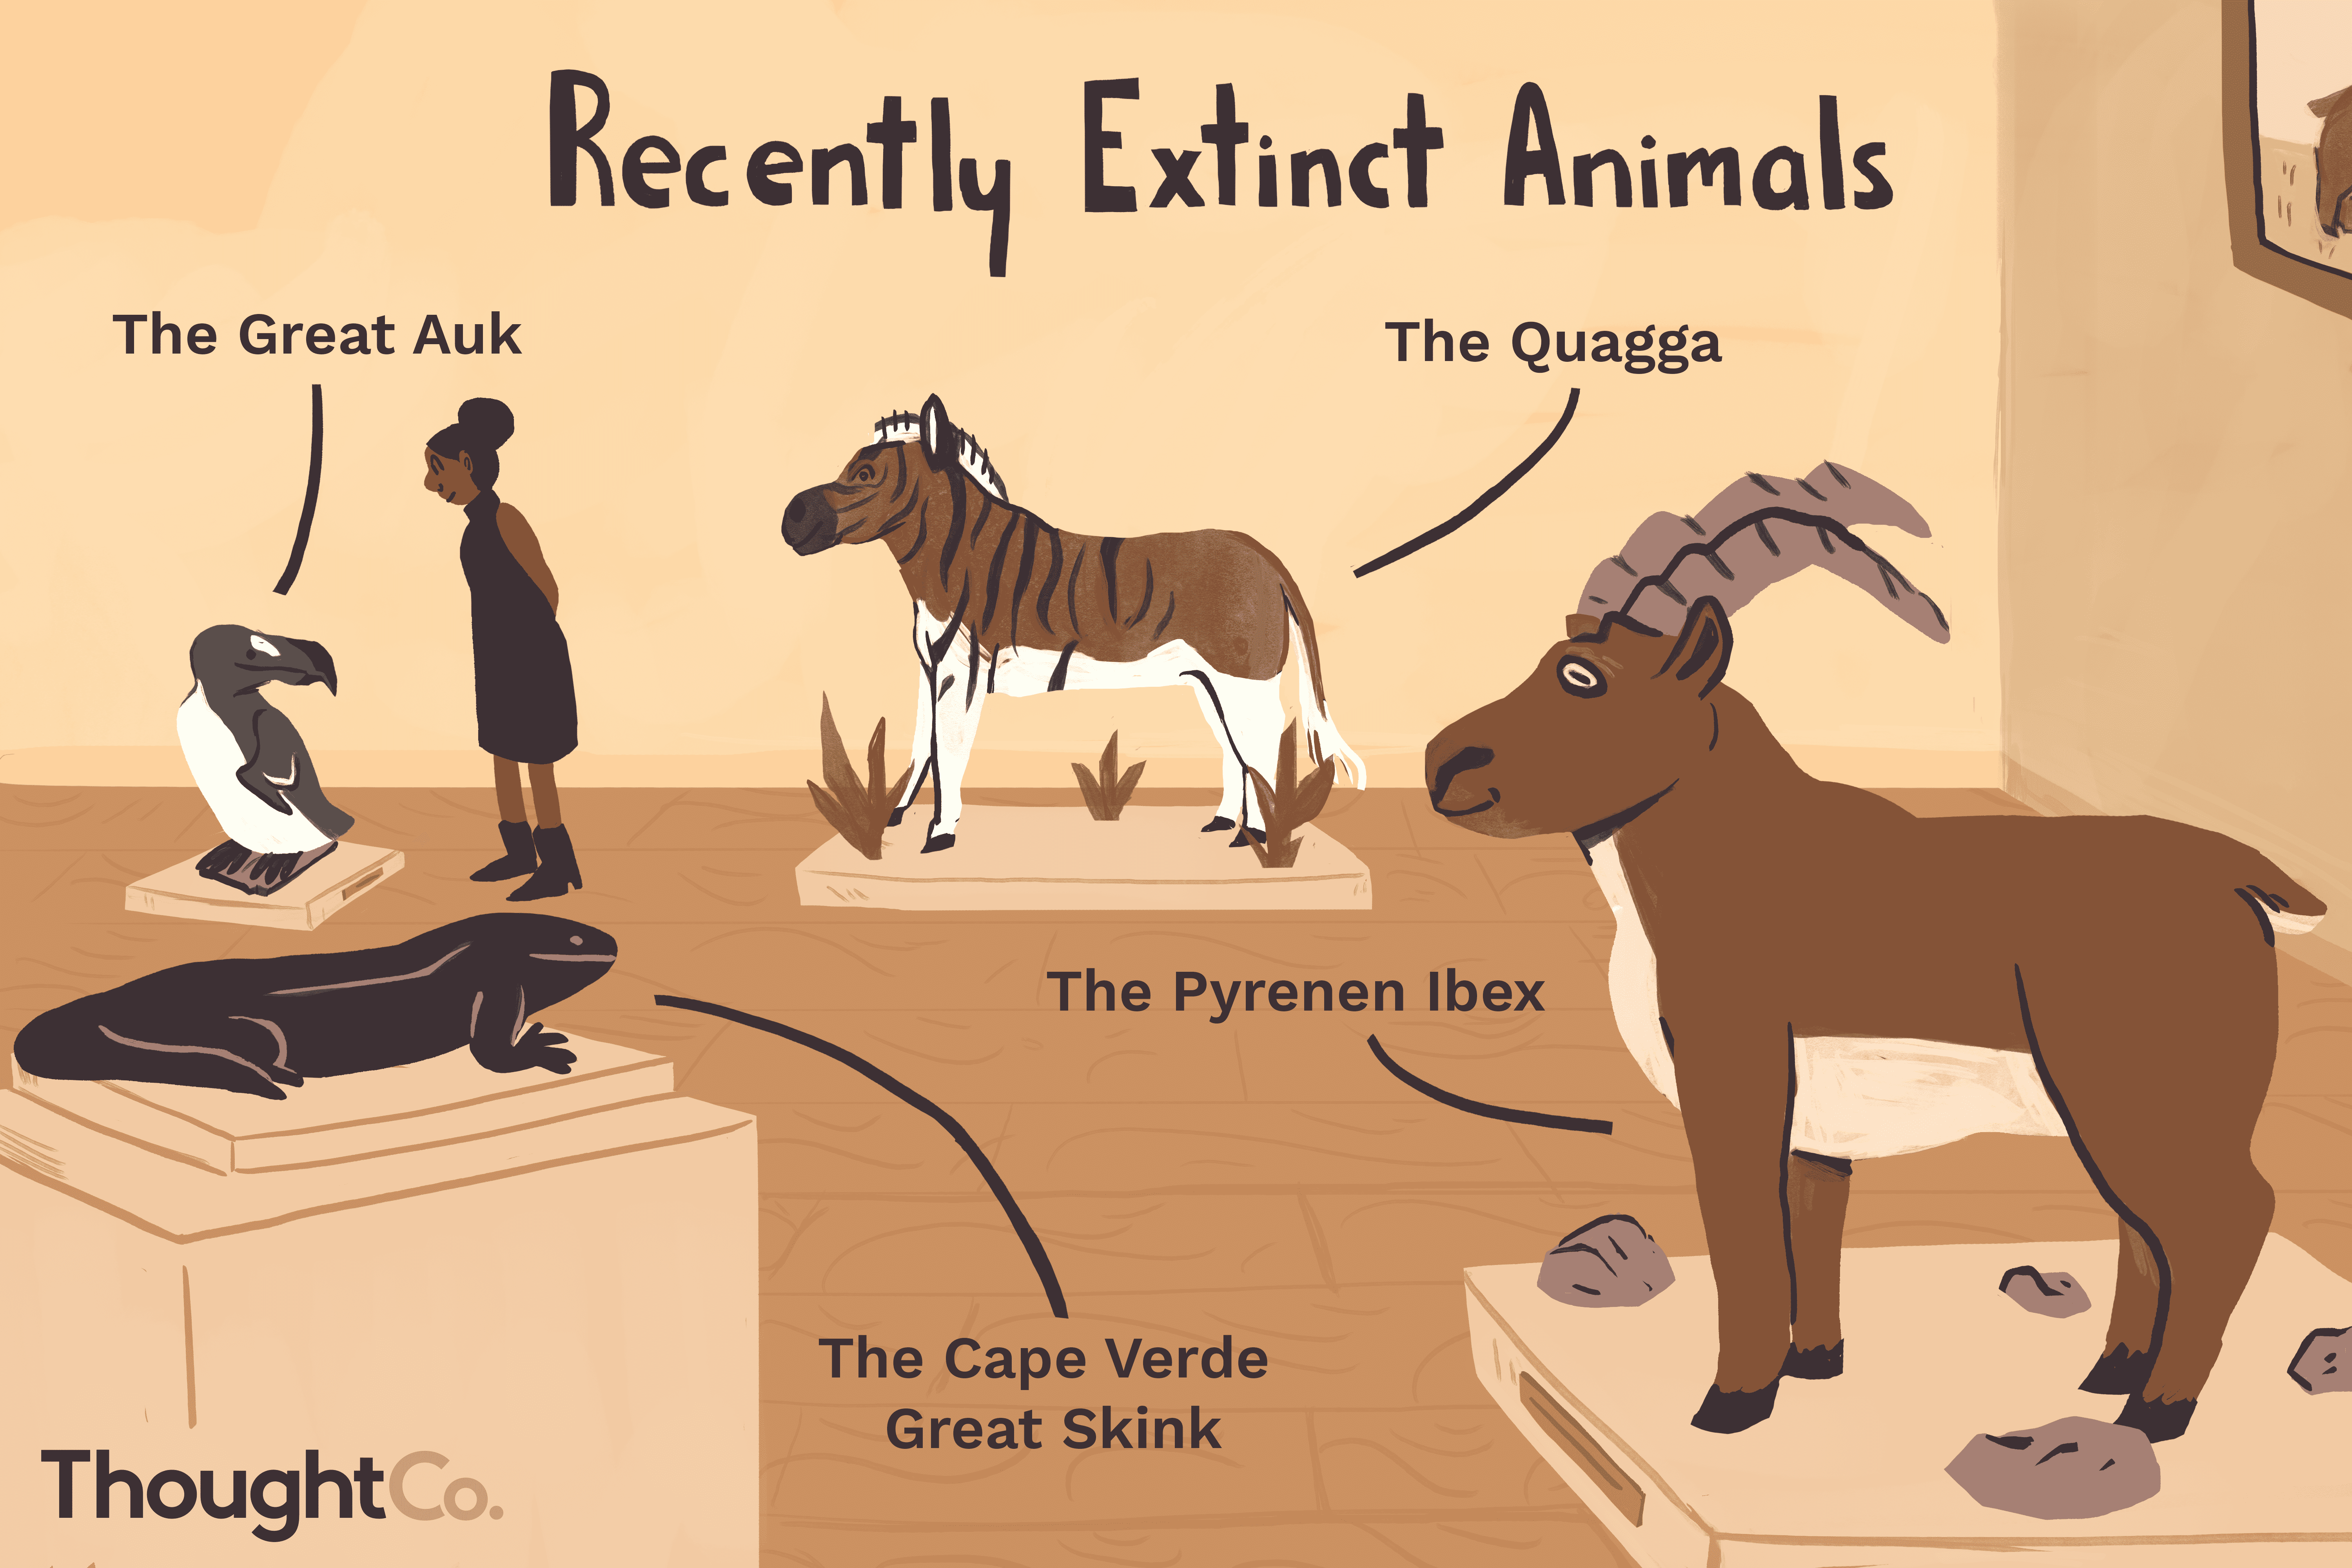 100 Animals That Have Gone Extinct in Recent History